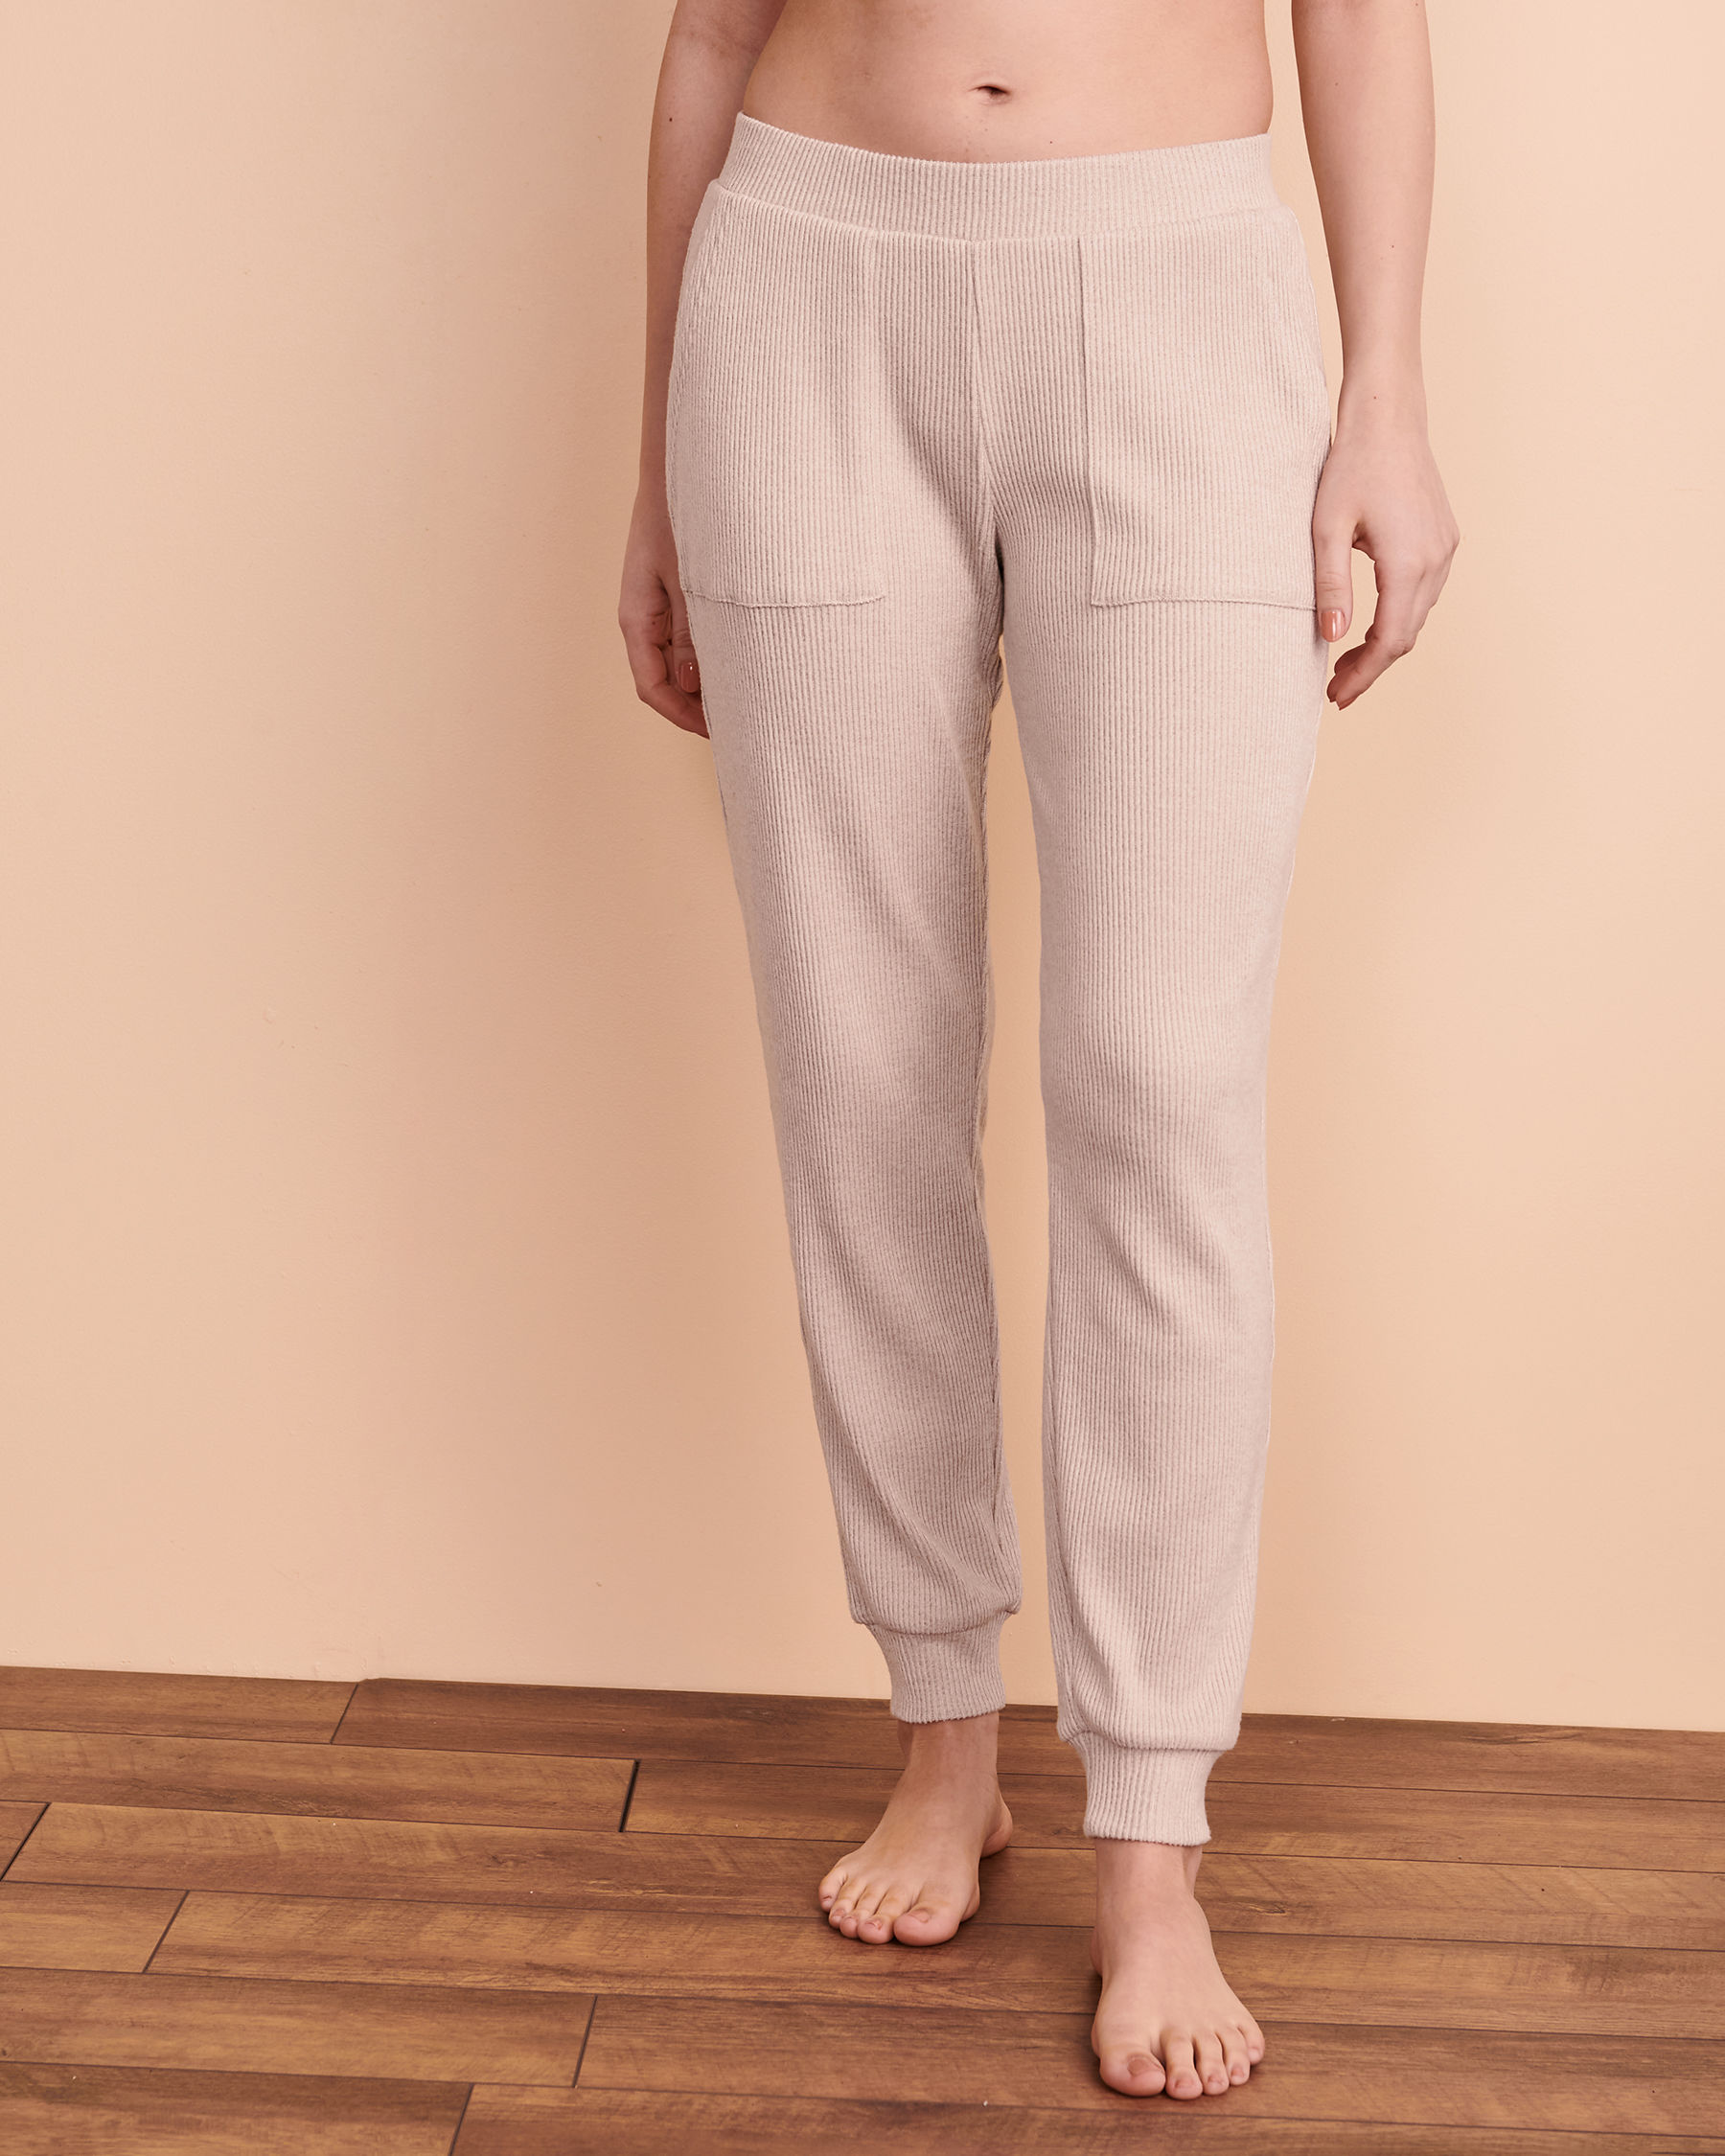 TURQUOISE COUTURE Ribbed Lounge Pant Light beige 02200014 - View1